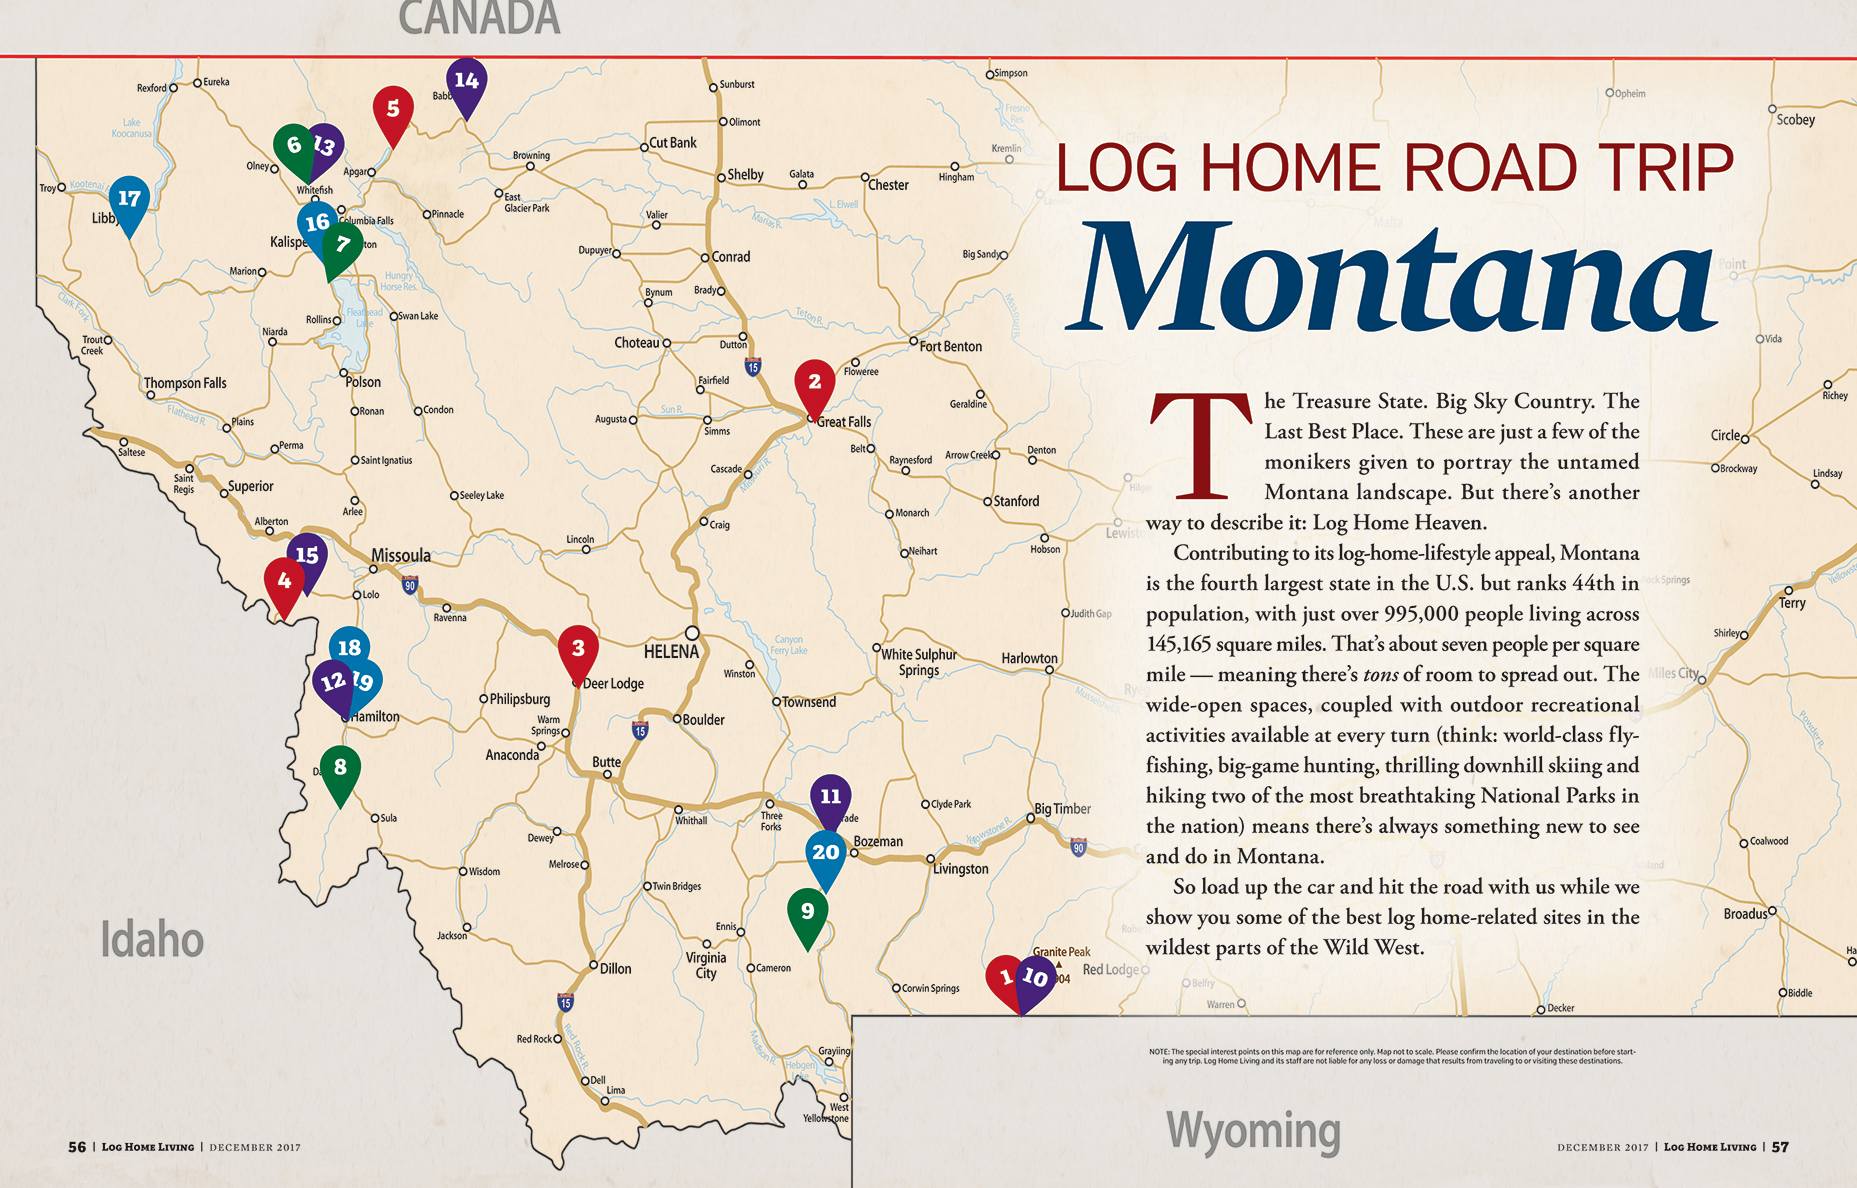 Log Home Road Trip 1 of 4